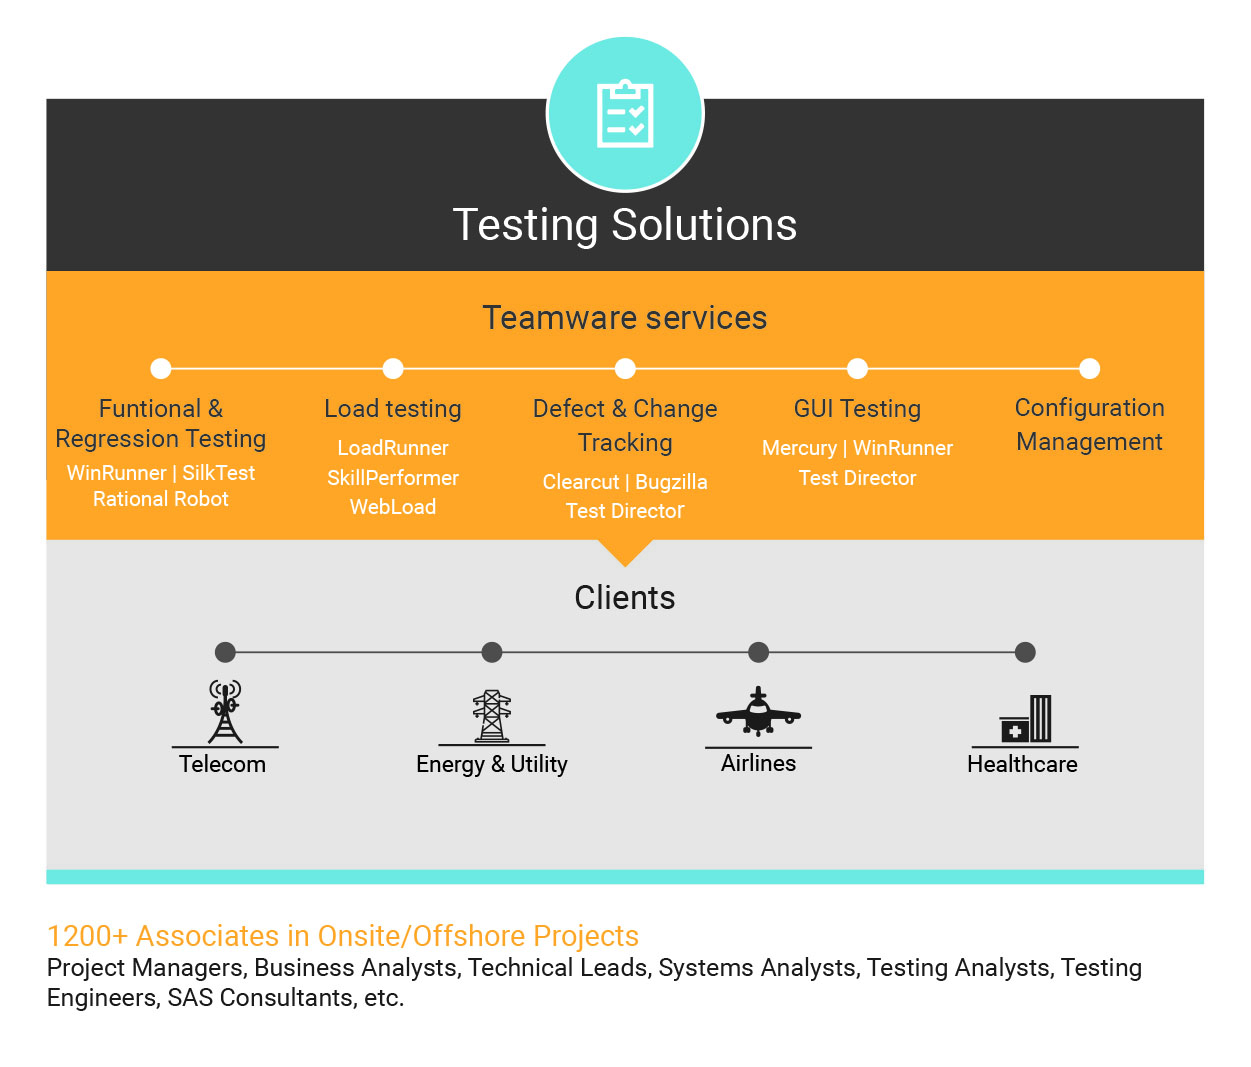 Testing Solutions